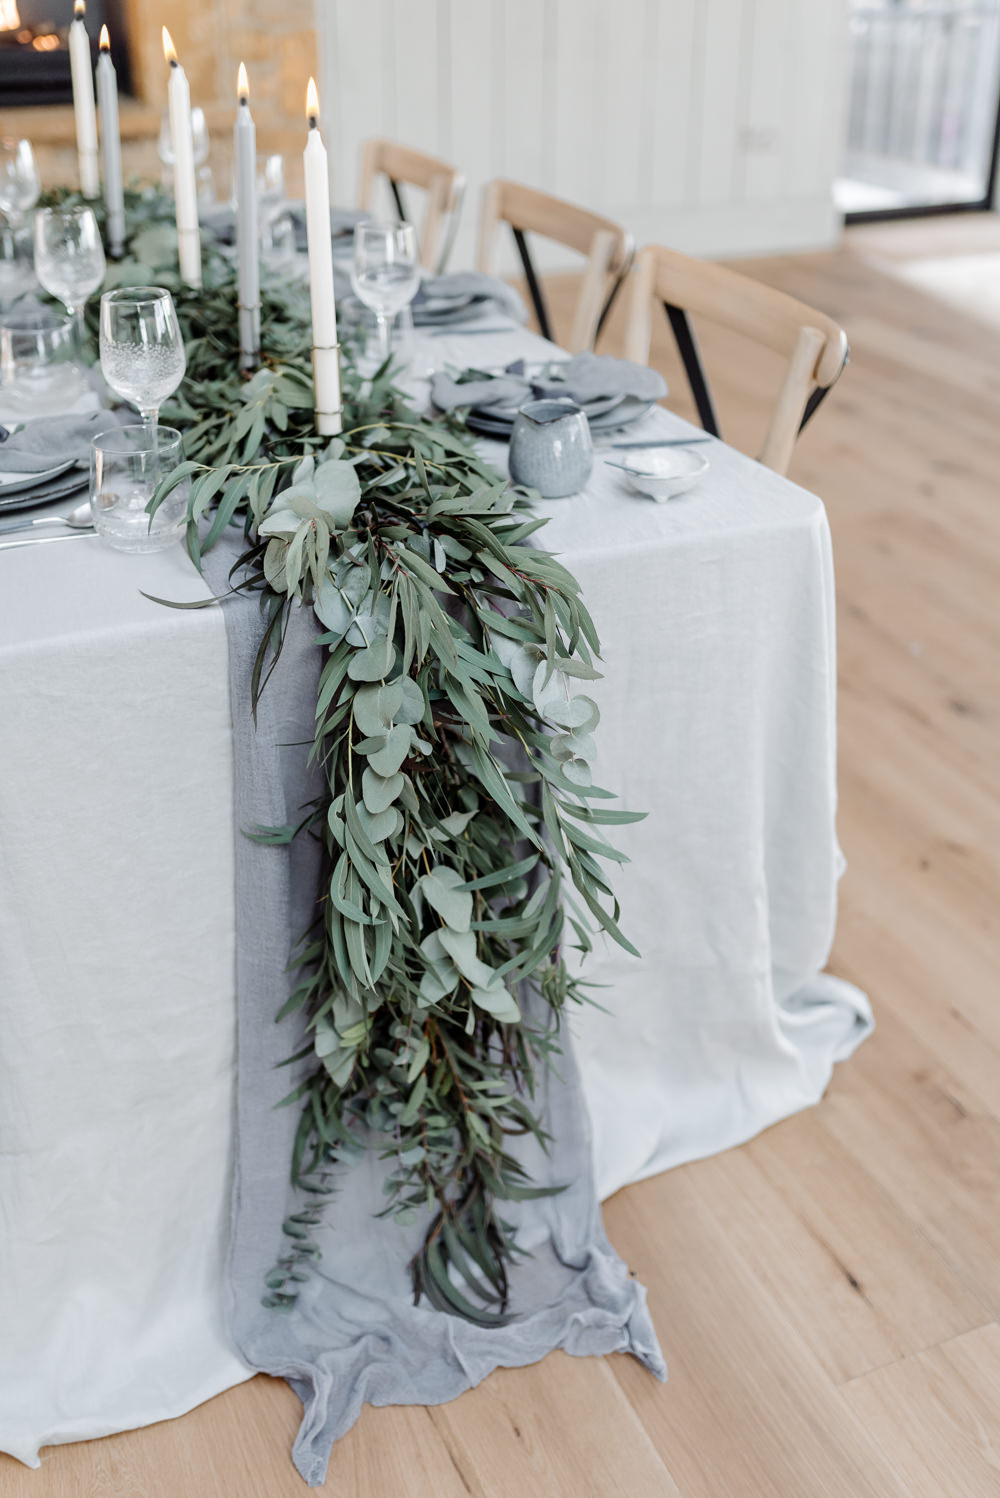 Eucalyptus Greenery Foliage Runner Table Tablescape Linen Garland Ribbons Candles Grey Violet Wedding Ideas Chloe Ely Photography